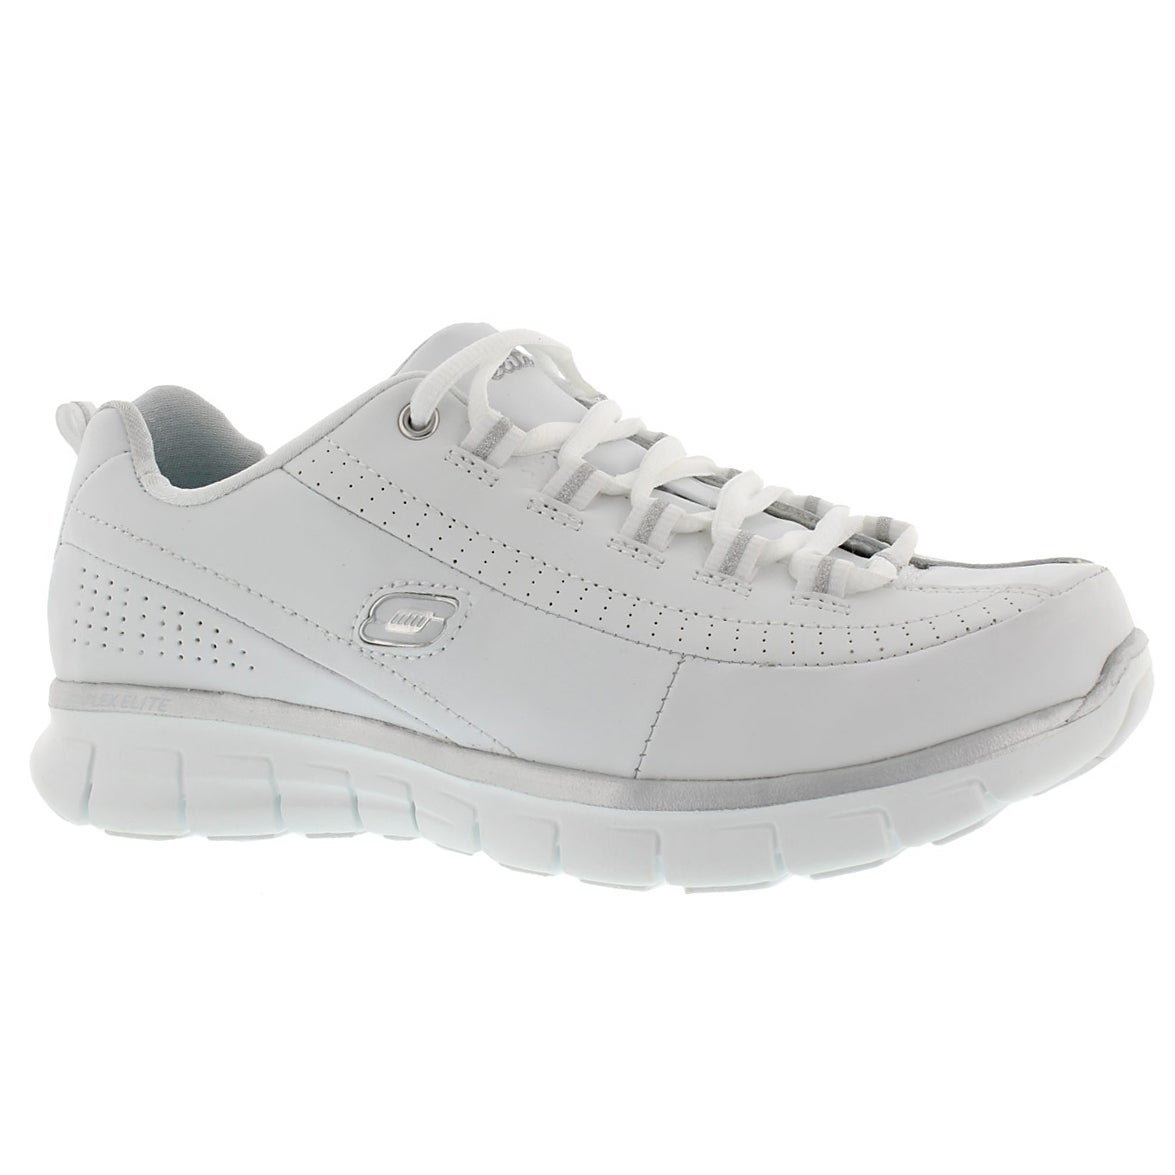 Lds Elite Status wht laceup sneaker-Wide